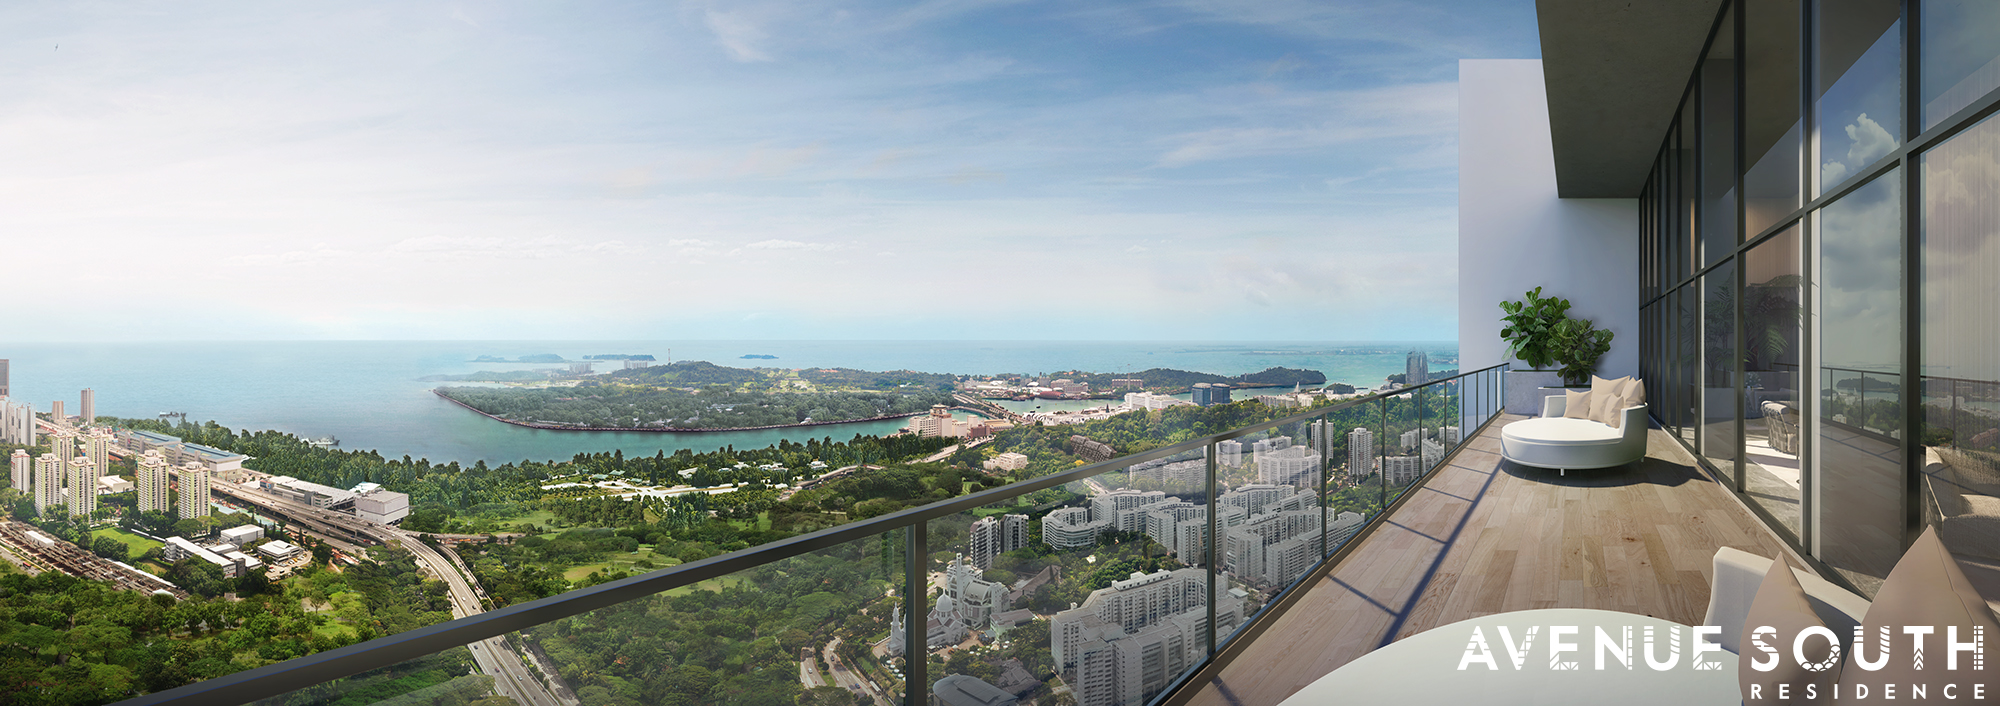 Avenue South Residence Artist Impression 5 Singapore